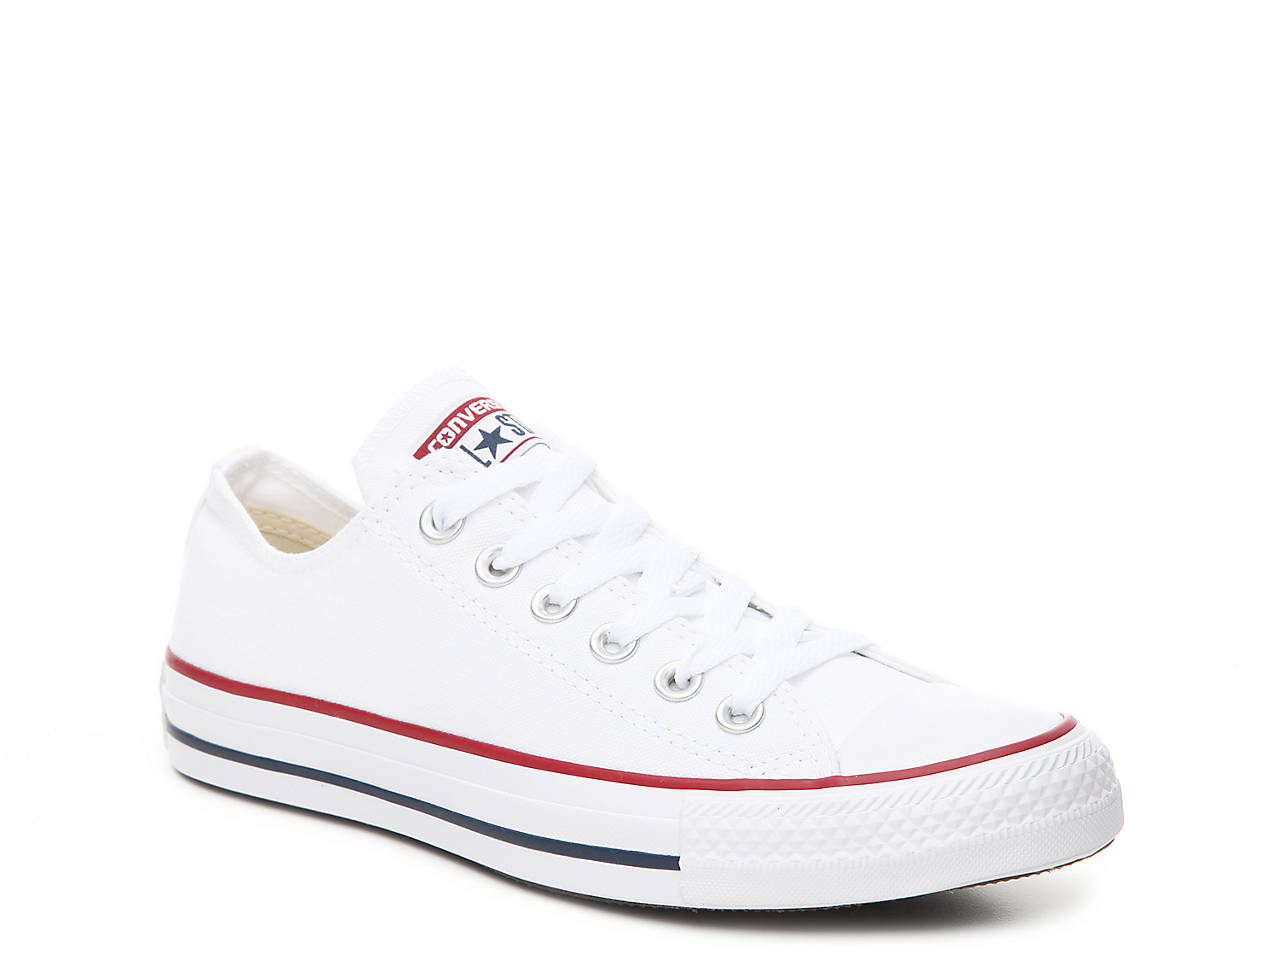 f7f5f8cedde Converse All-Star High Tops   Sneakers